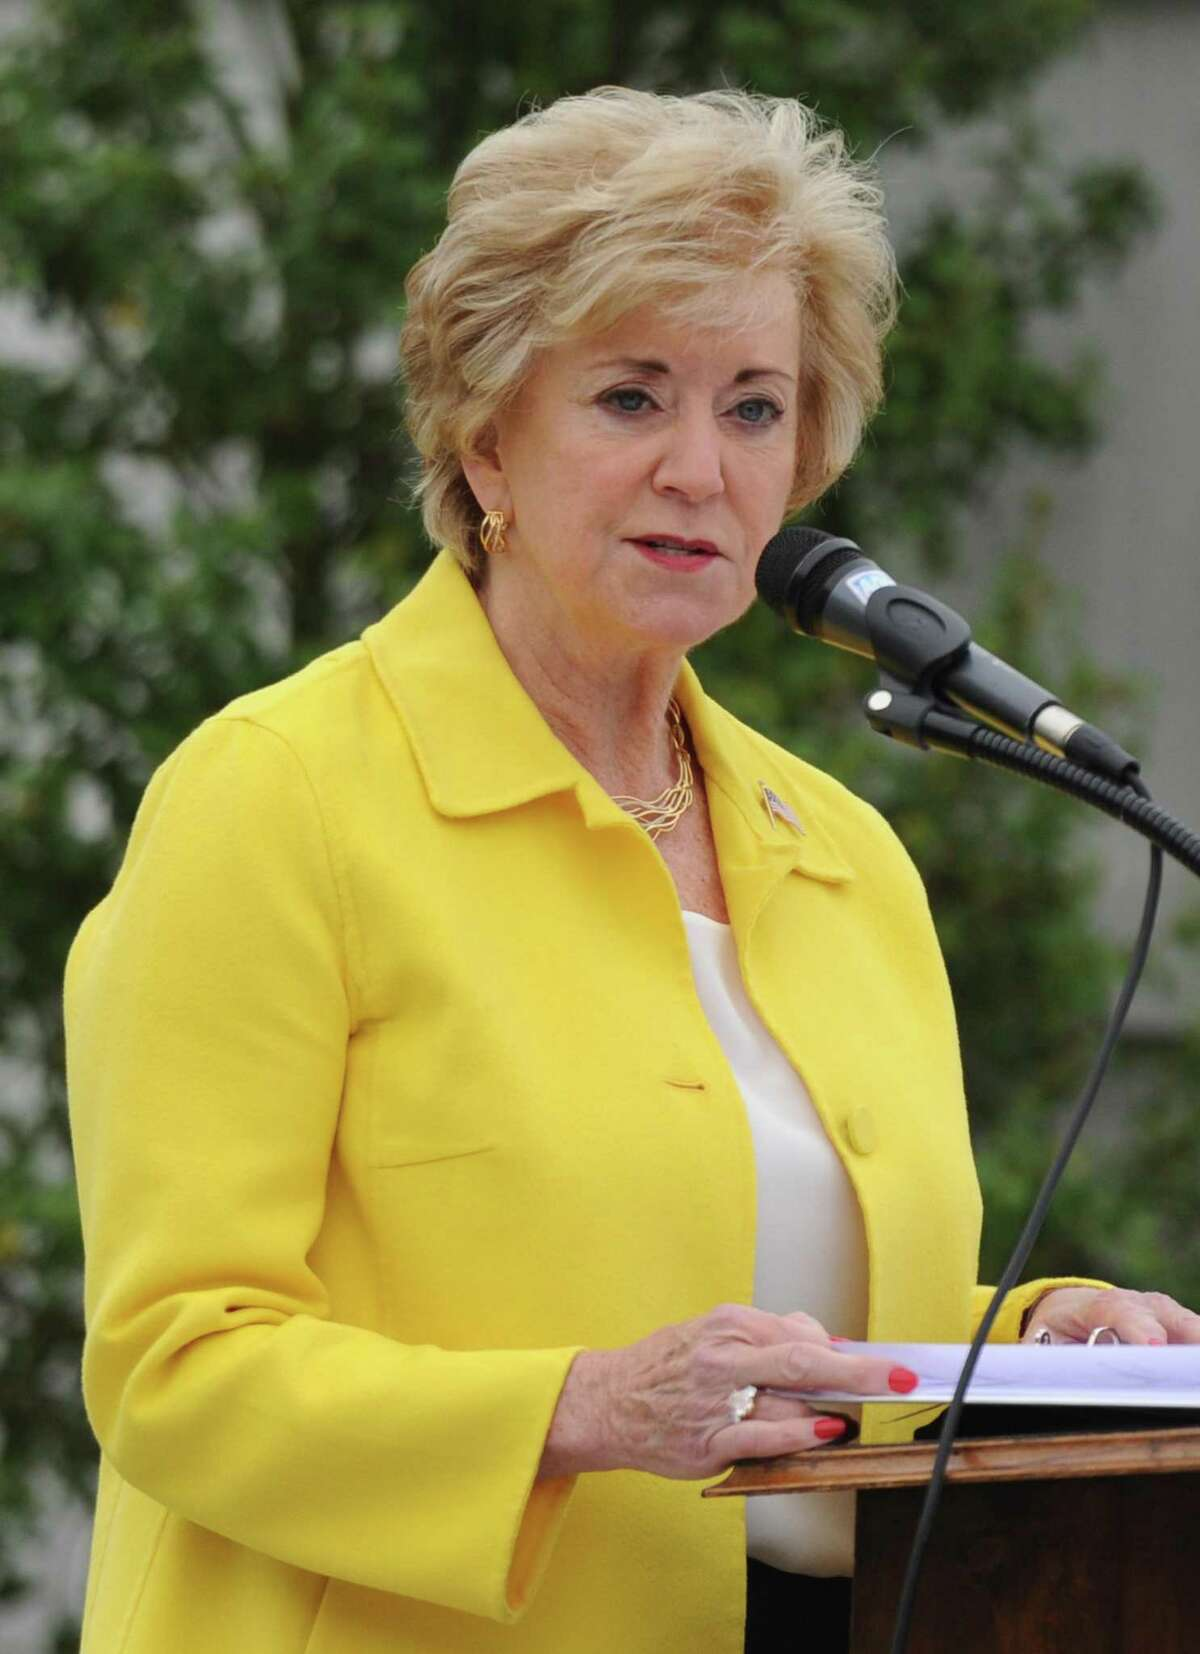 Linda McMahon, Administrator of the Small Business Administration, speaks at the 2018 Memorial Day Dockside Ceremony at Indian Harbor Yacht Club in Greenwich, Conn. Monday, May 28, 2018. Presented by American Legion Post 29, the ceremony featured Medal of Honor winner U.S. Army Captain Paul Bucha, a Vietnam veteran, as the keynote speaker.